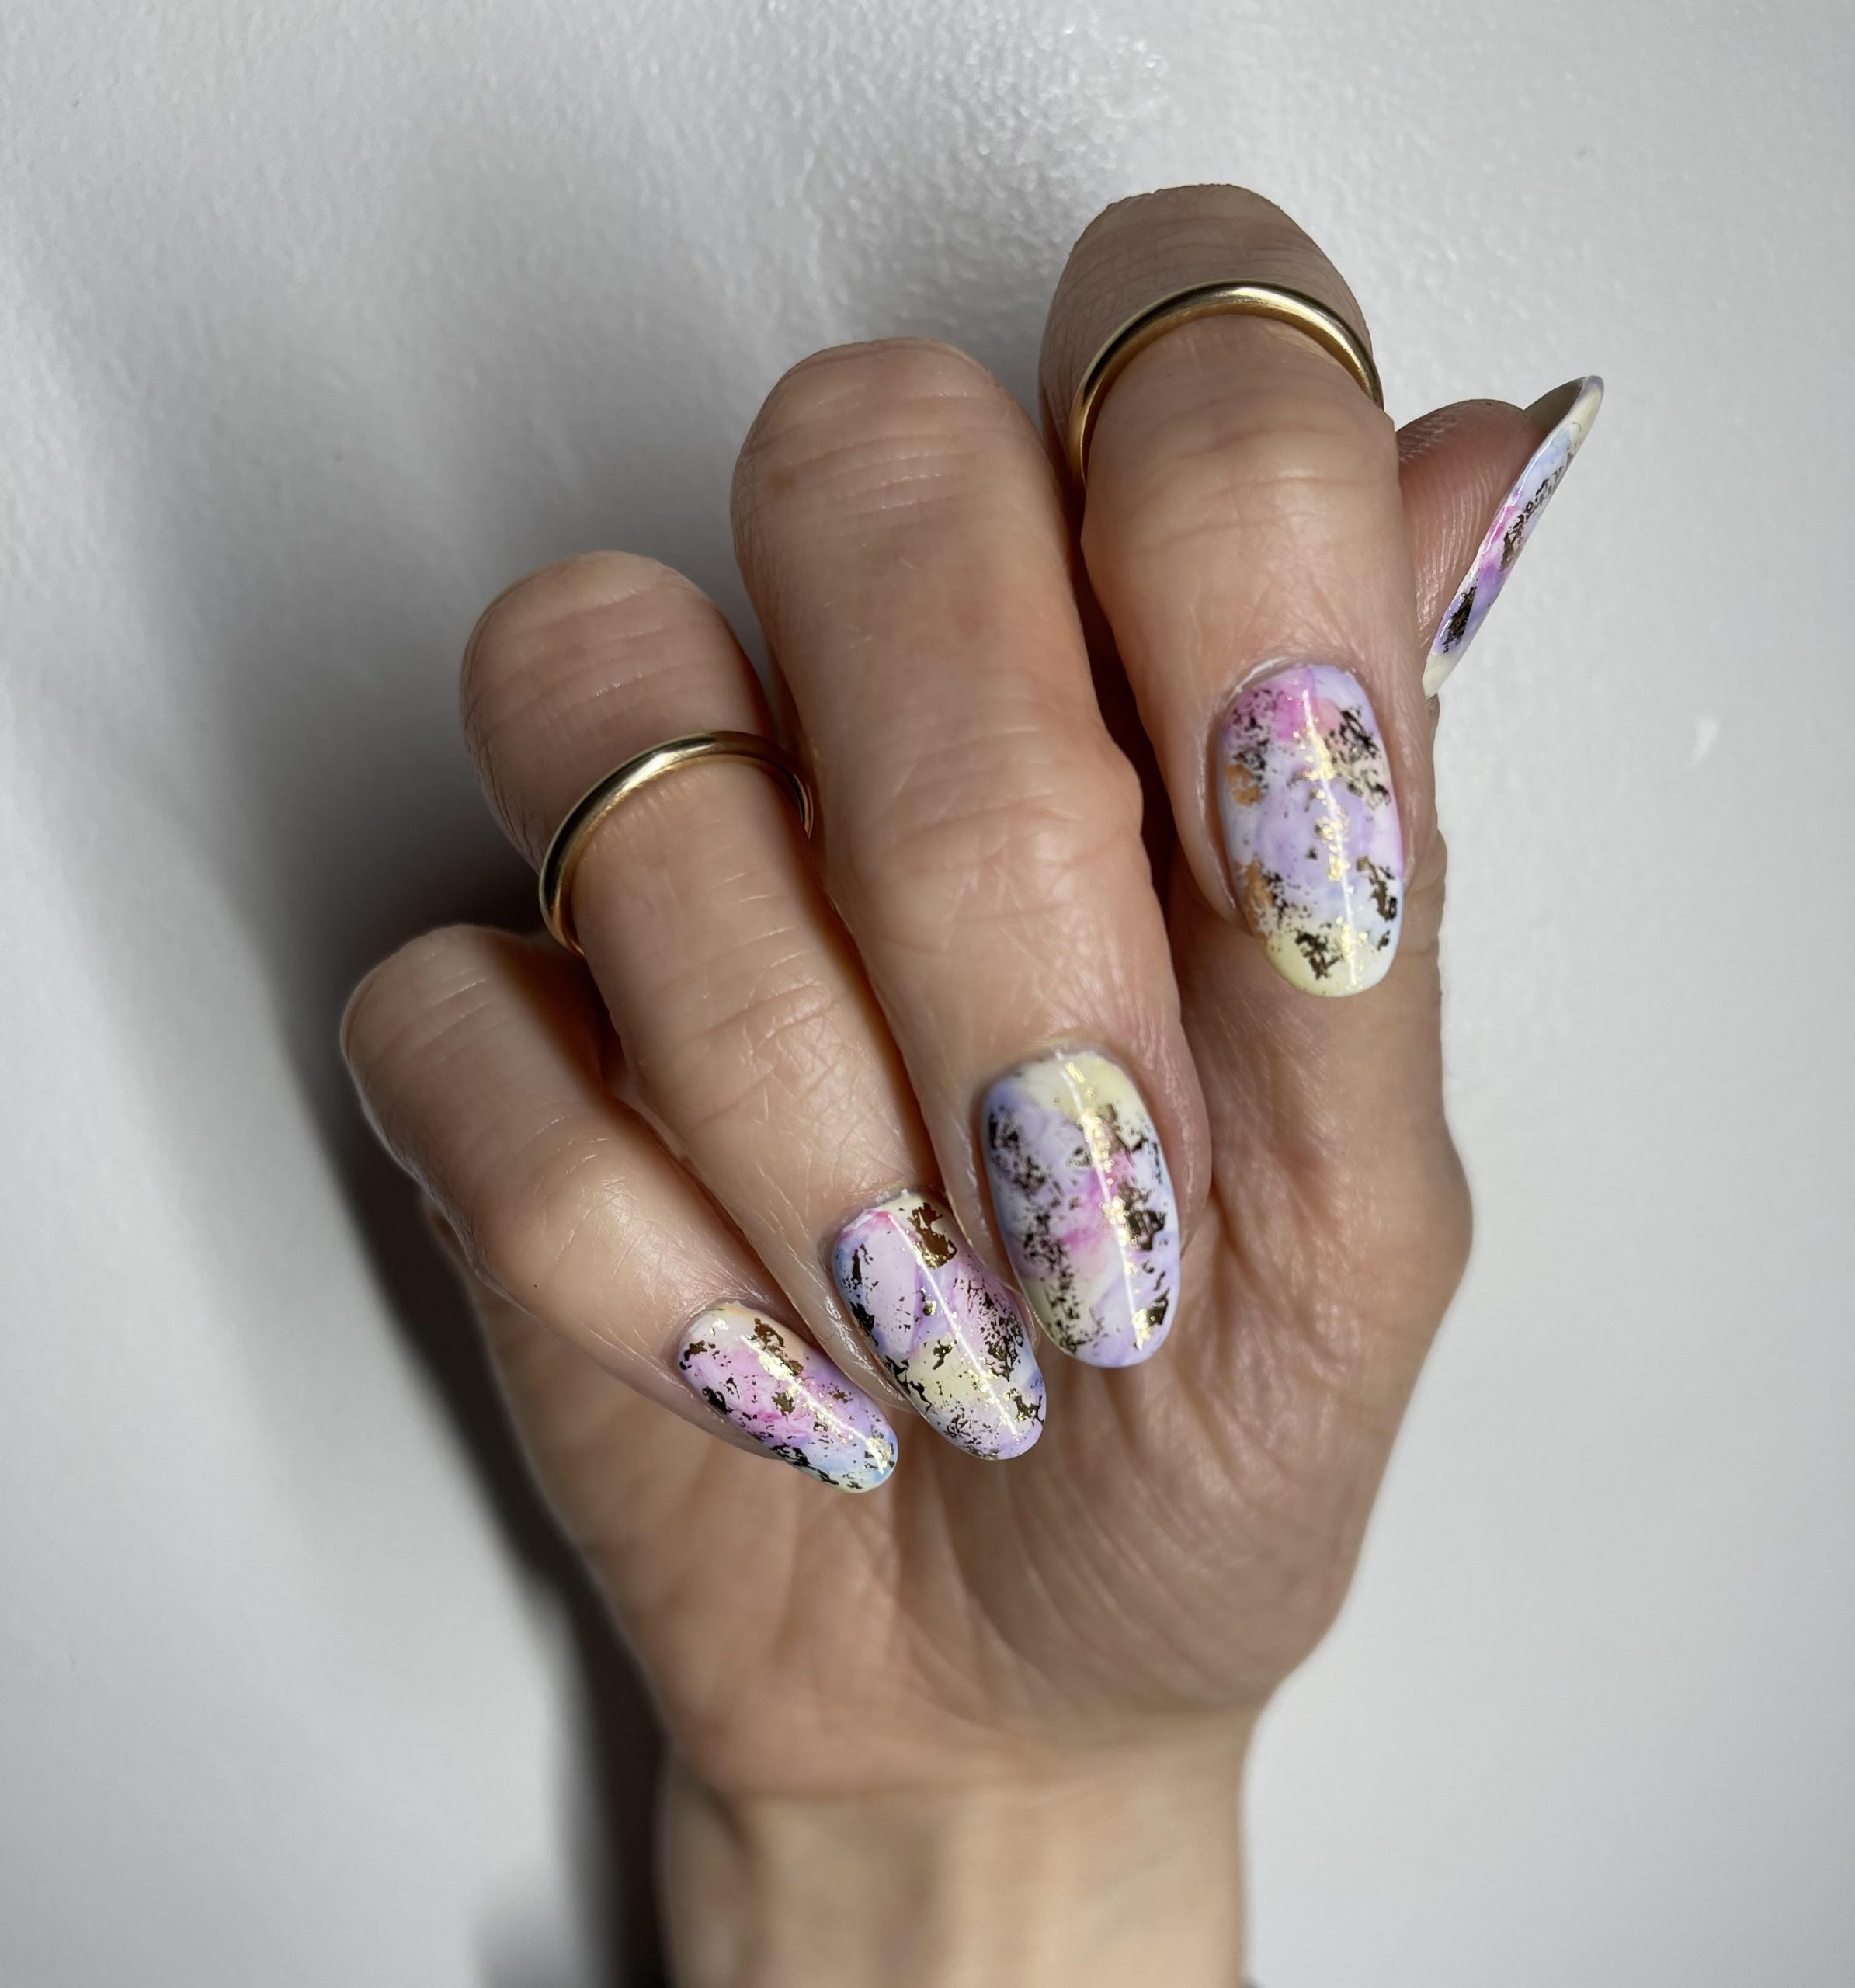 easter nails, watercolour nails, gold foil, lecente,CND Shellac, nail art, nail pro, nail artist, nail technician, gel nails, shellac nails, acrylic nails, ware, mobile